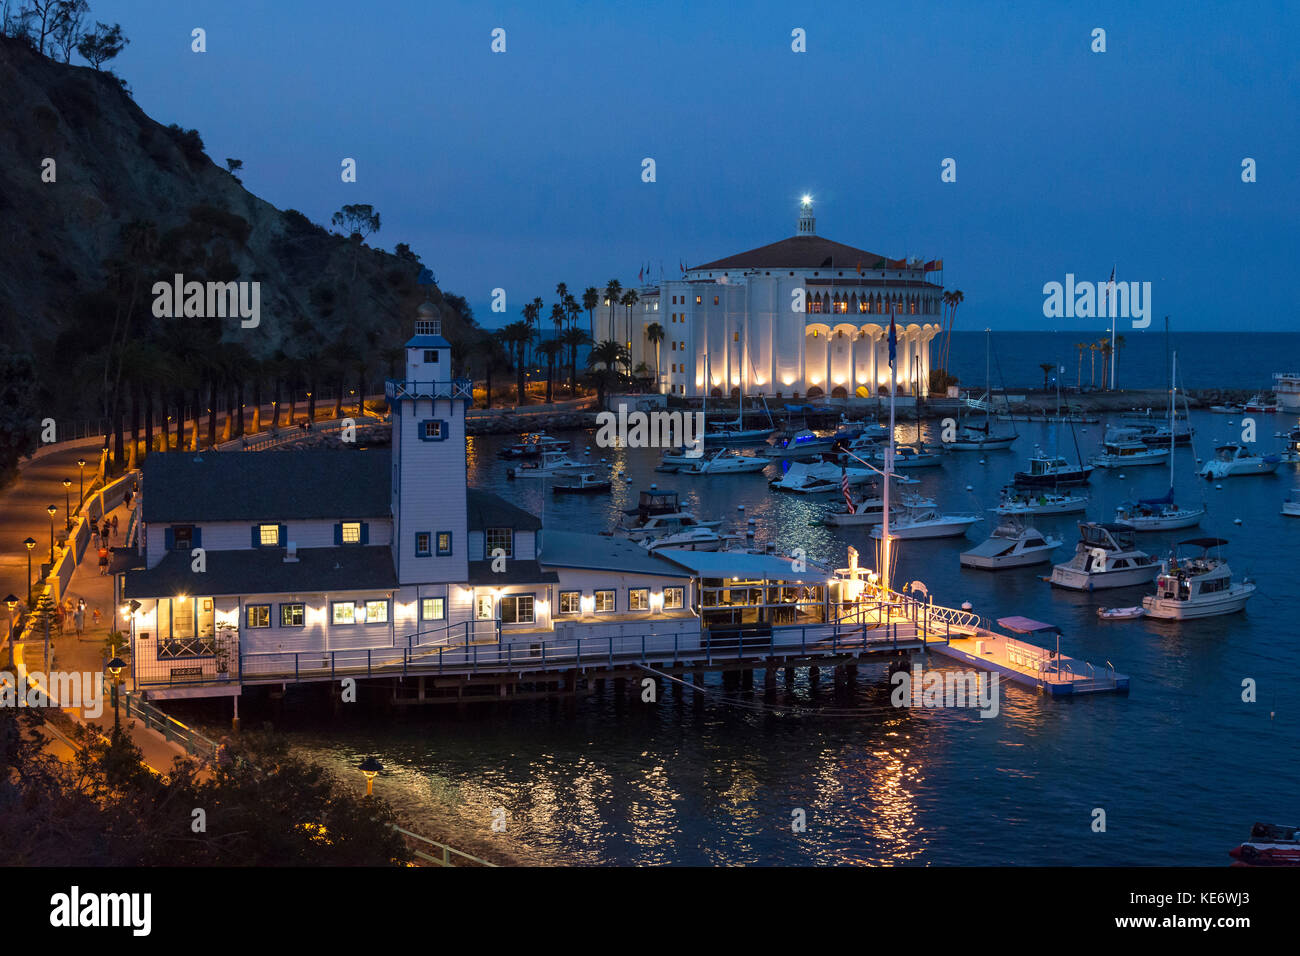 Avalon Harbour, Catalina Island, California, USA - Stock Image